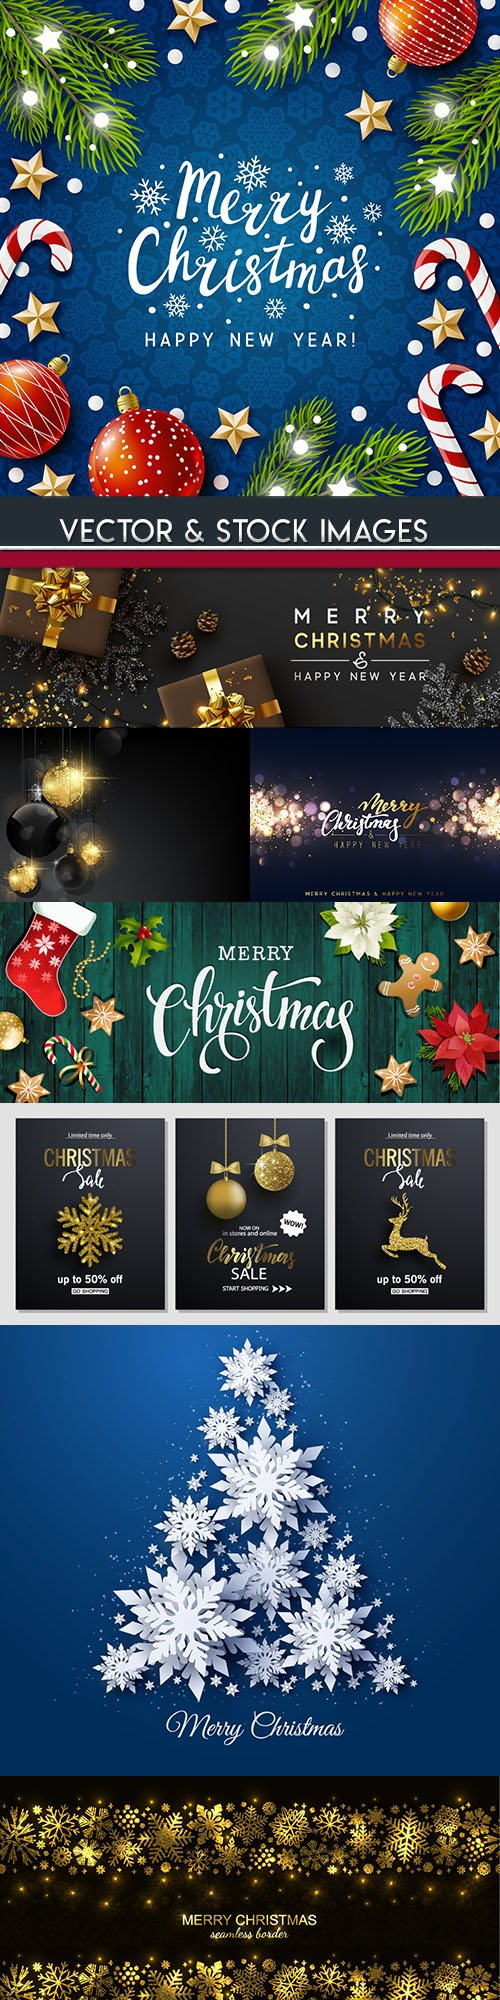 New Year and Christmas decorative illustration 3